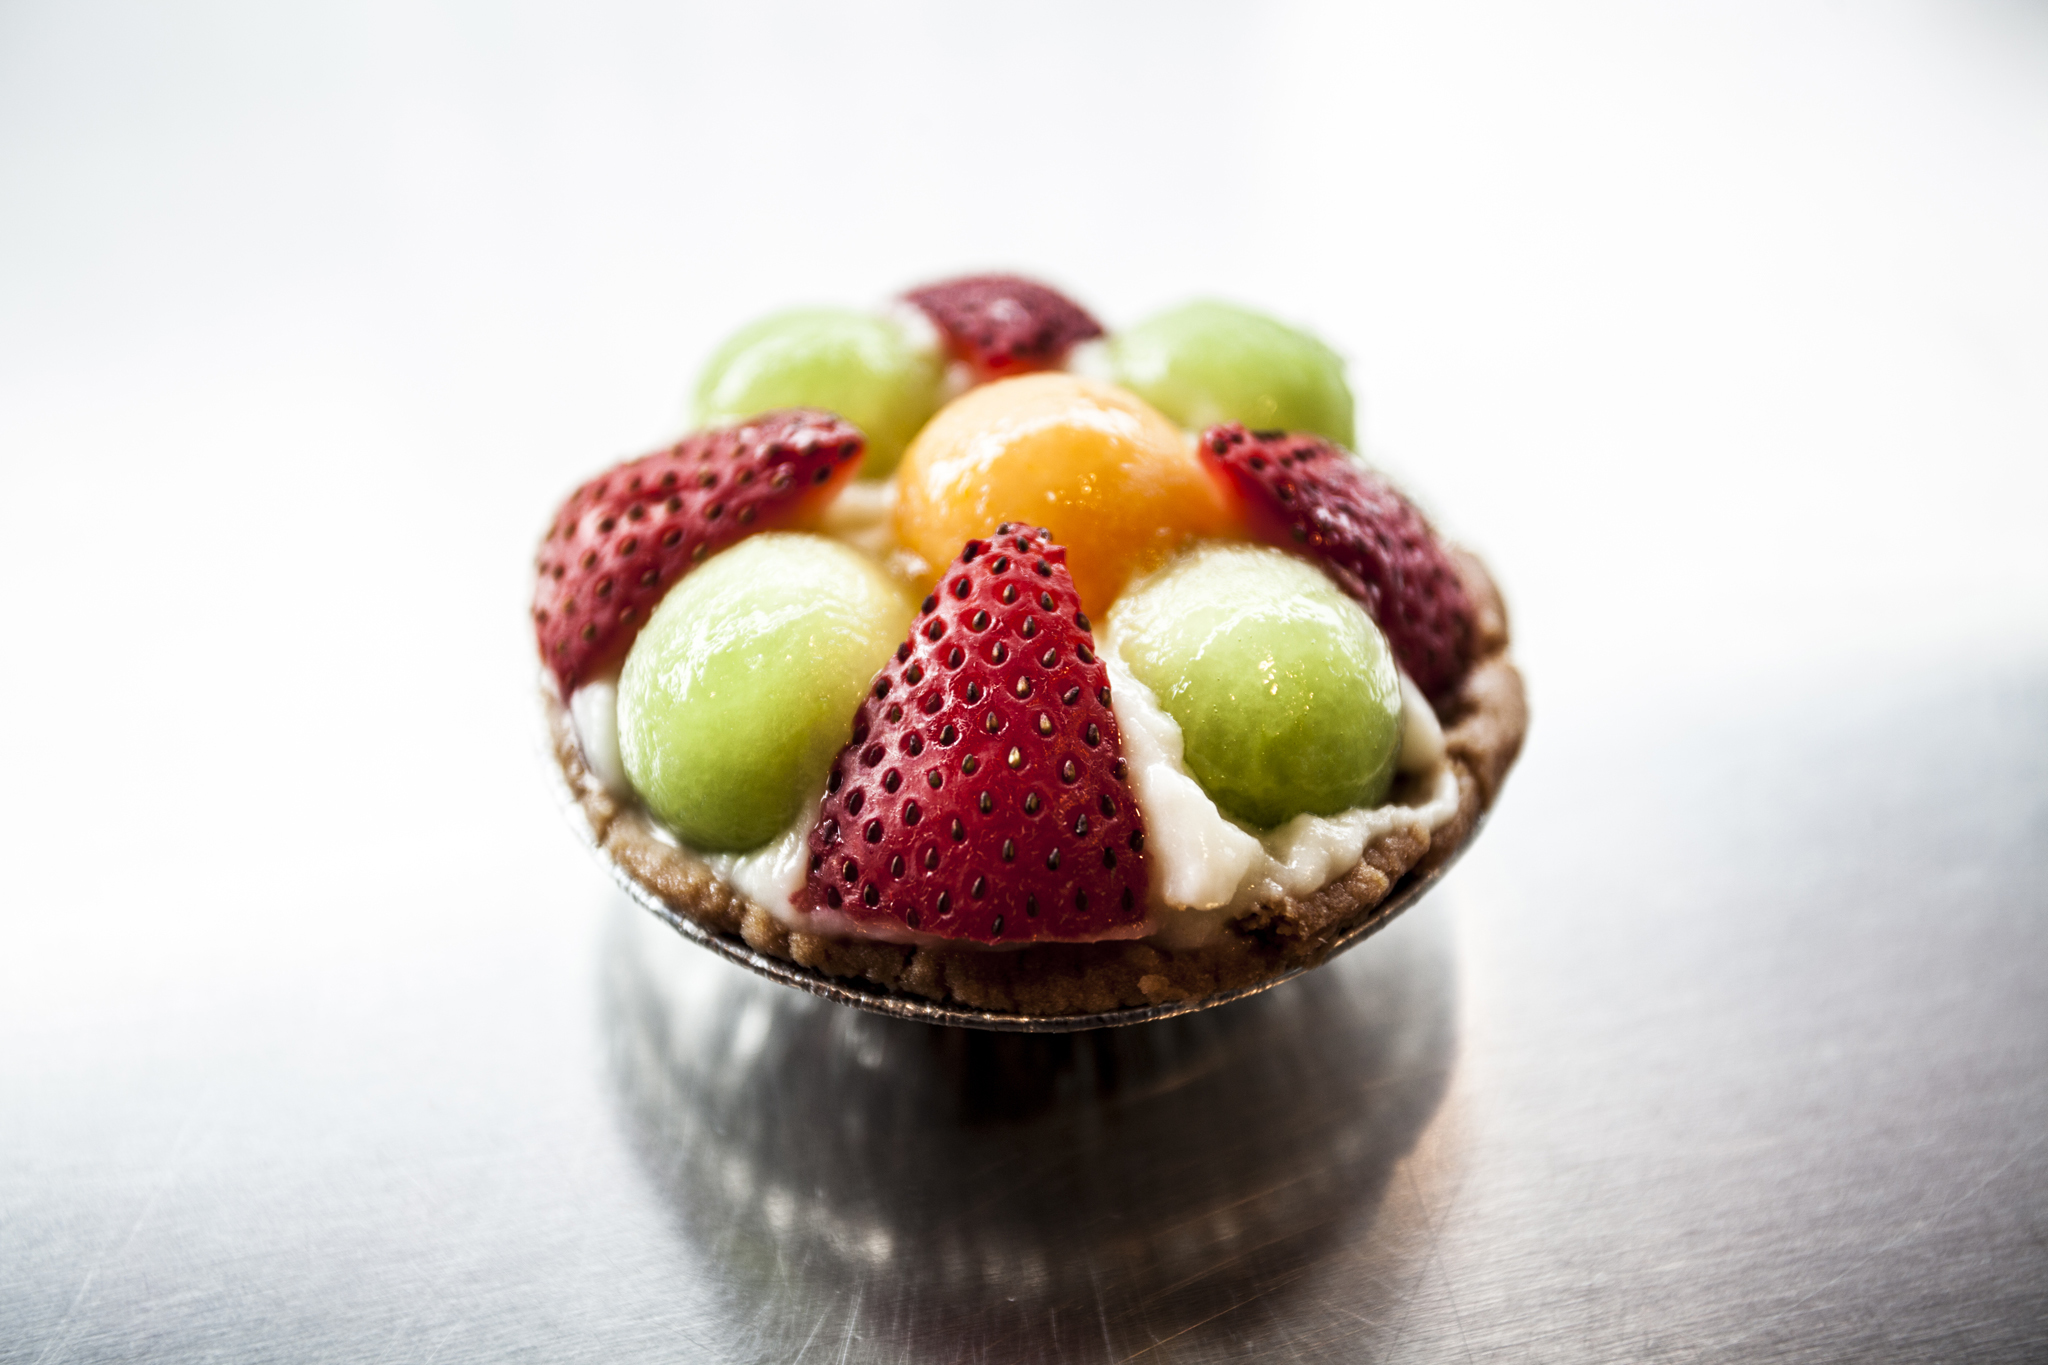 Ten best bakeries for Chinese pastries in New York City